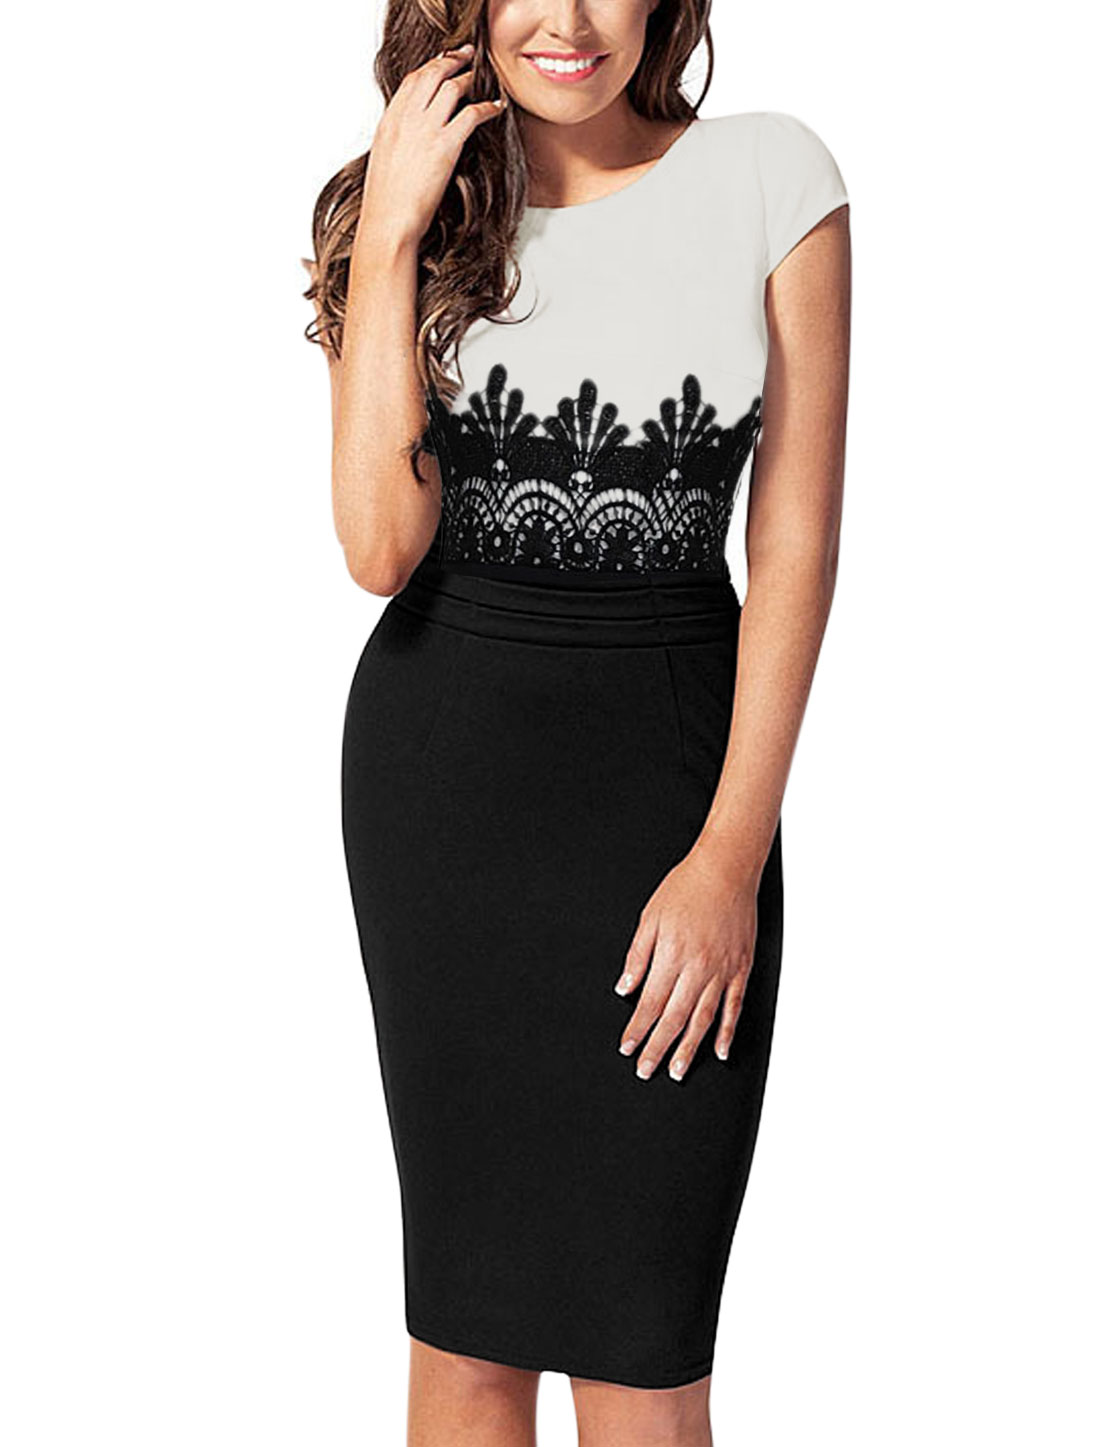 Lady Cap Sleeve Crochet Panel Hidden Zipper Back Stretch Dress Black White L